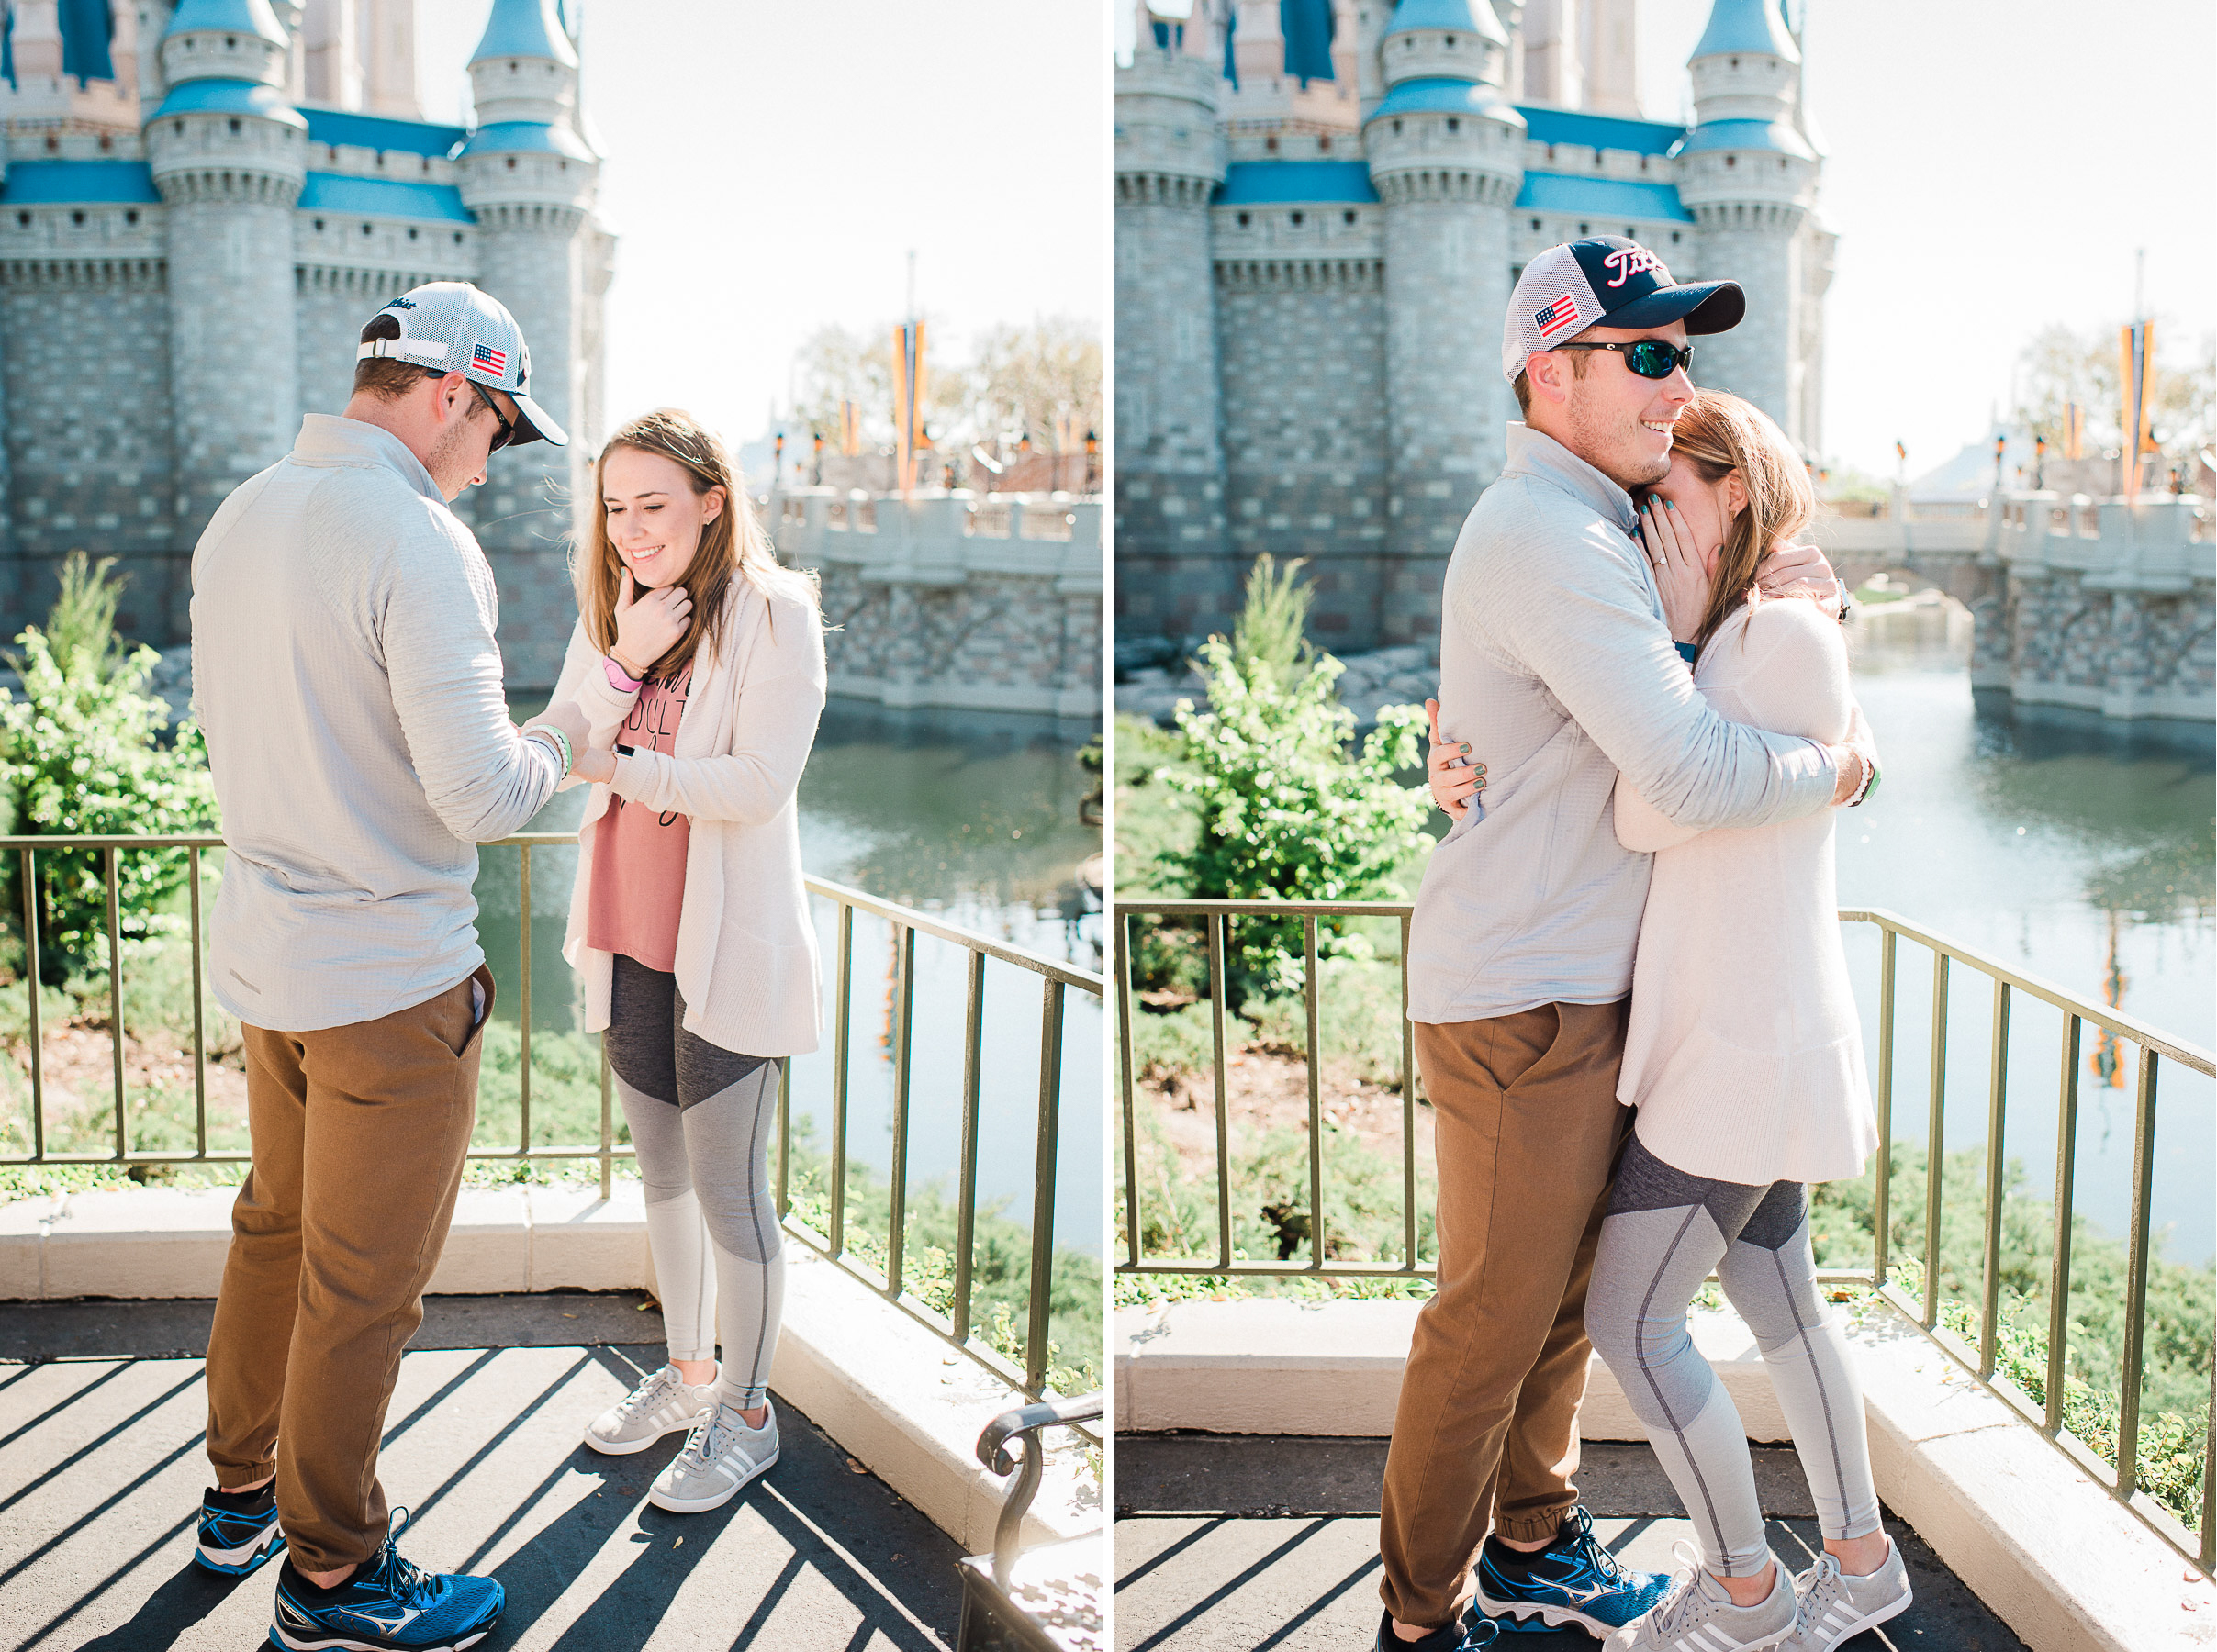 KateTaramykinStudios-Disney-World-Proposal-Kup-14.jpg